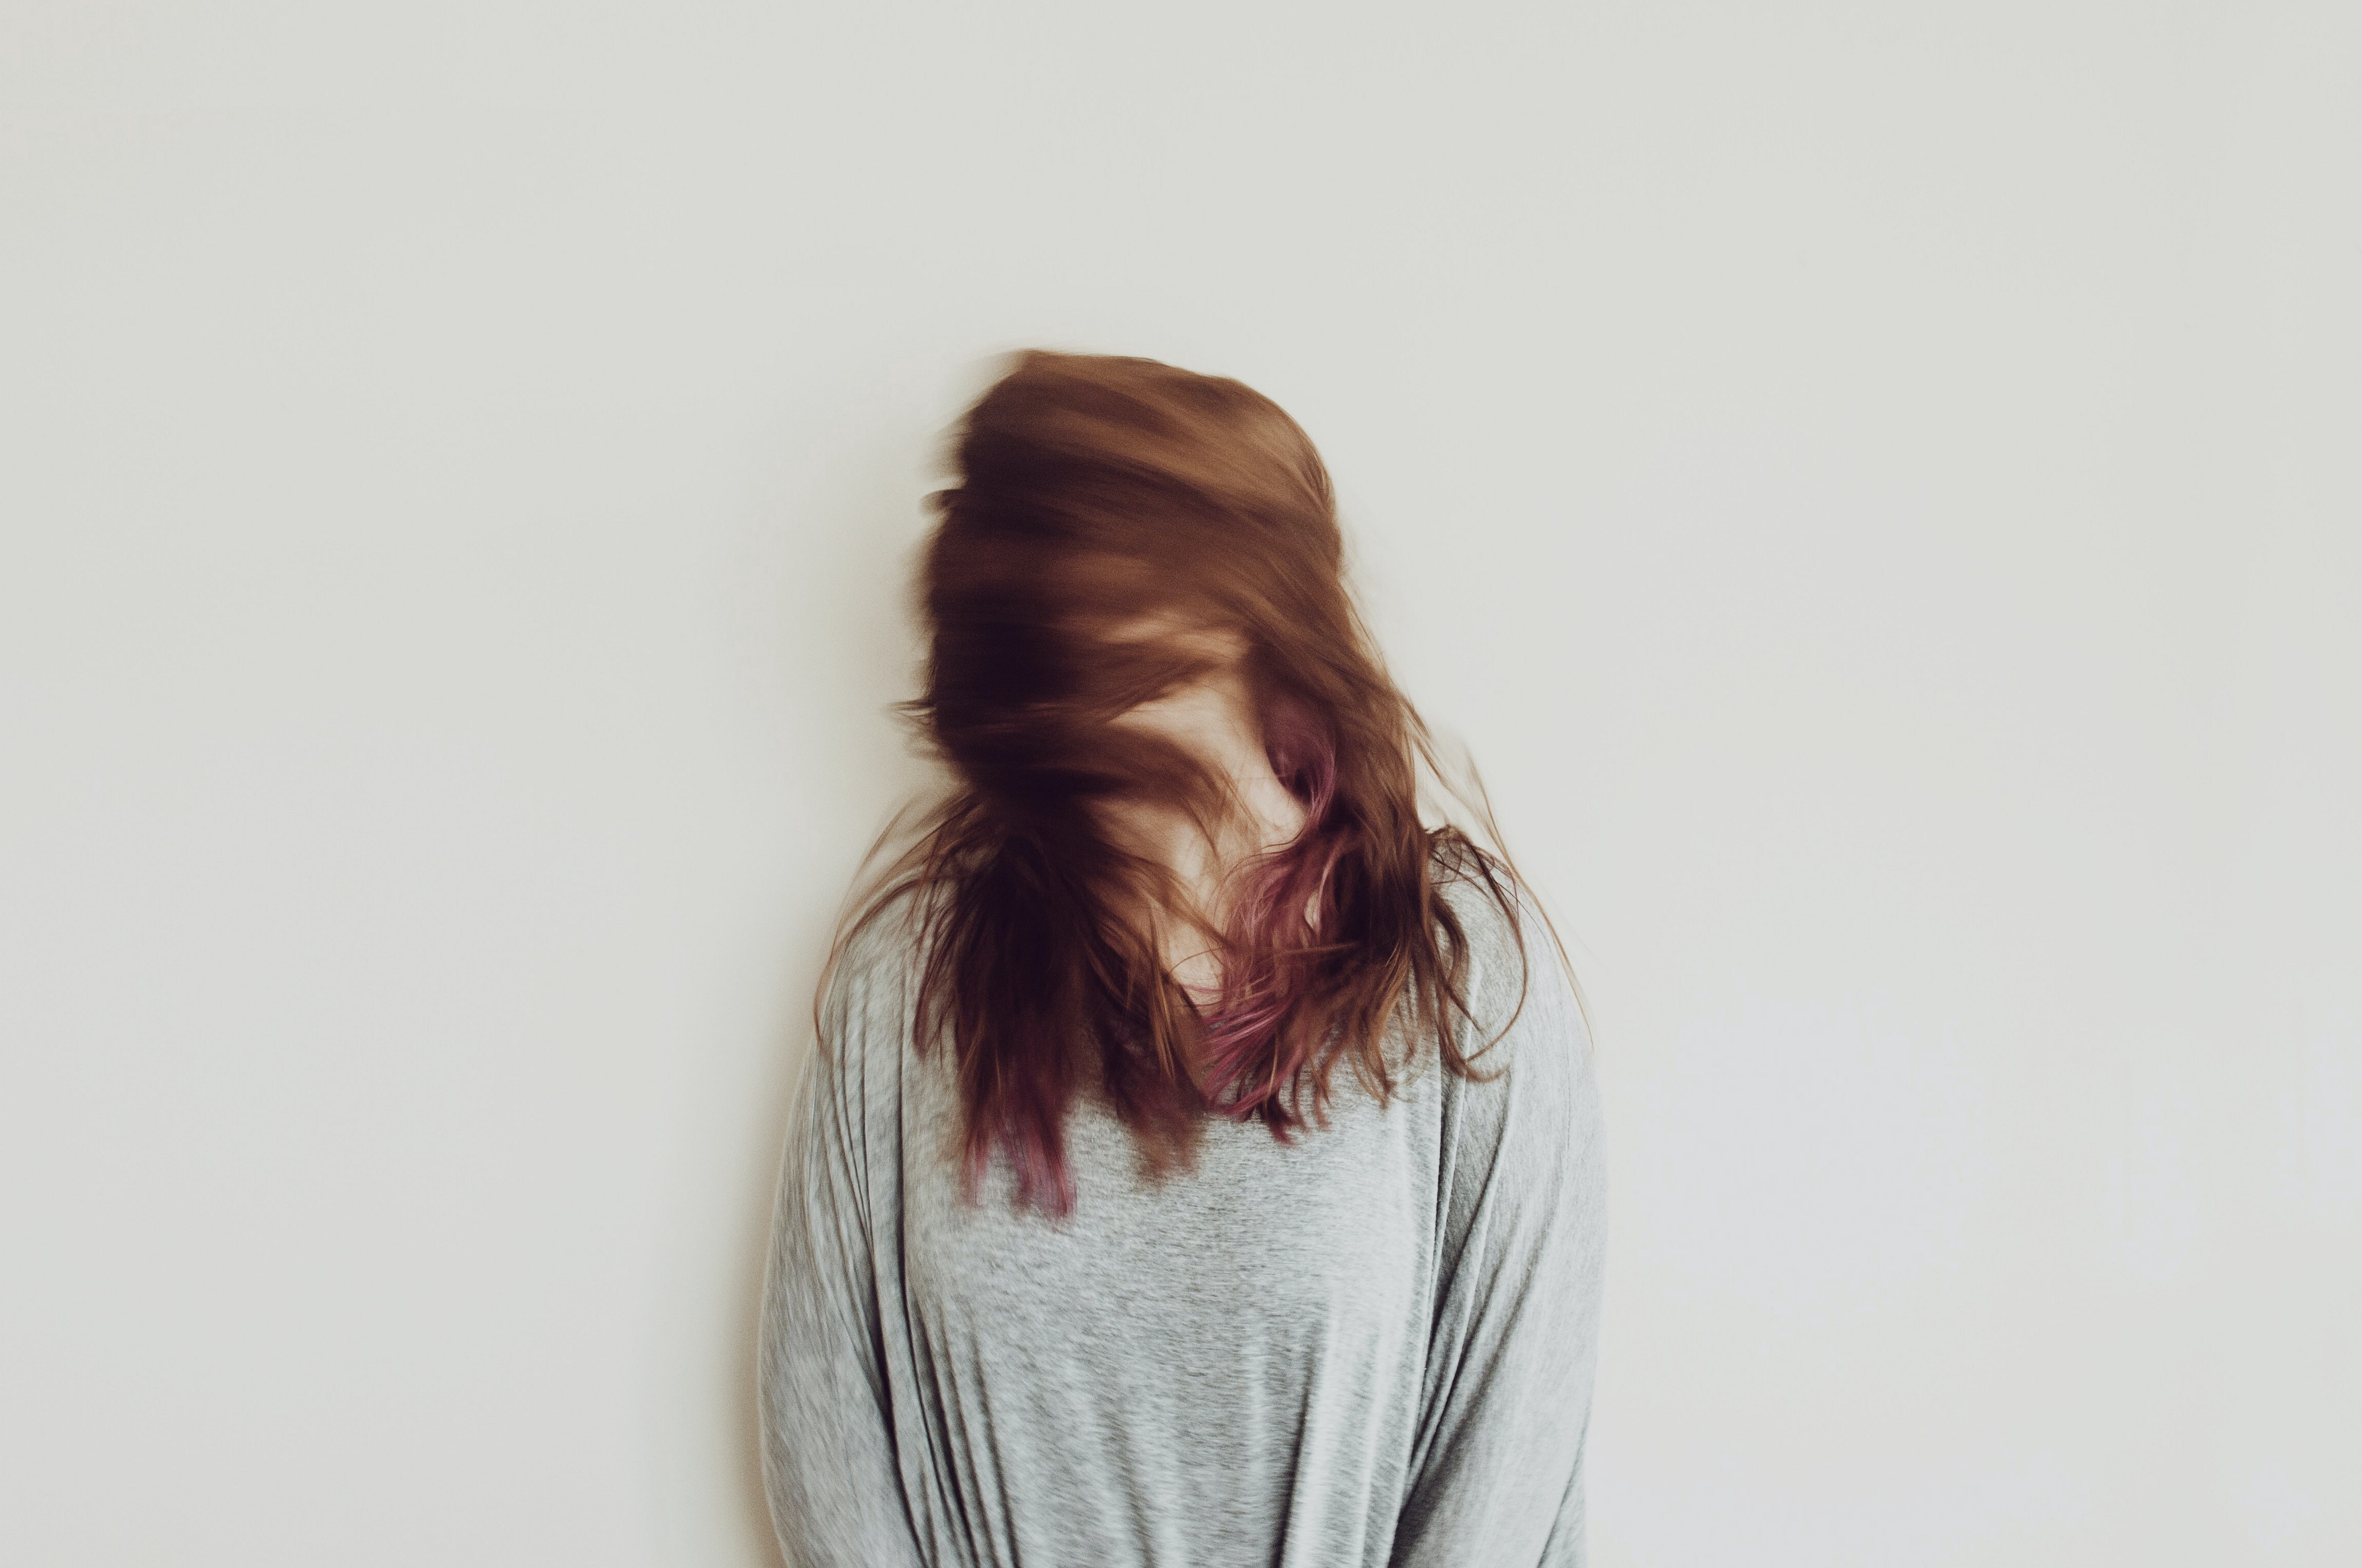 Woman with her head turned to the side, her face obscured by her blowing hair